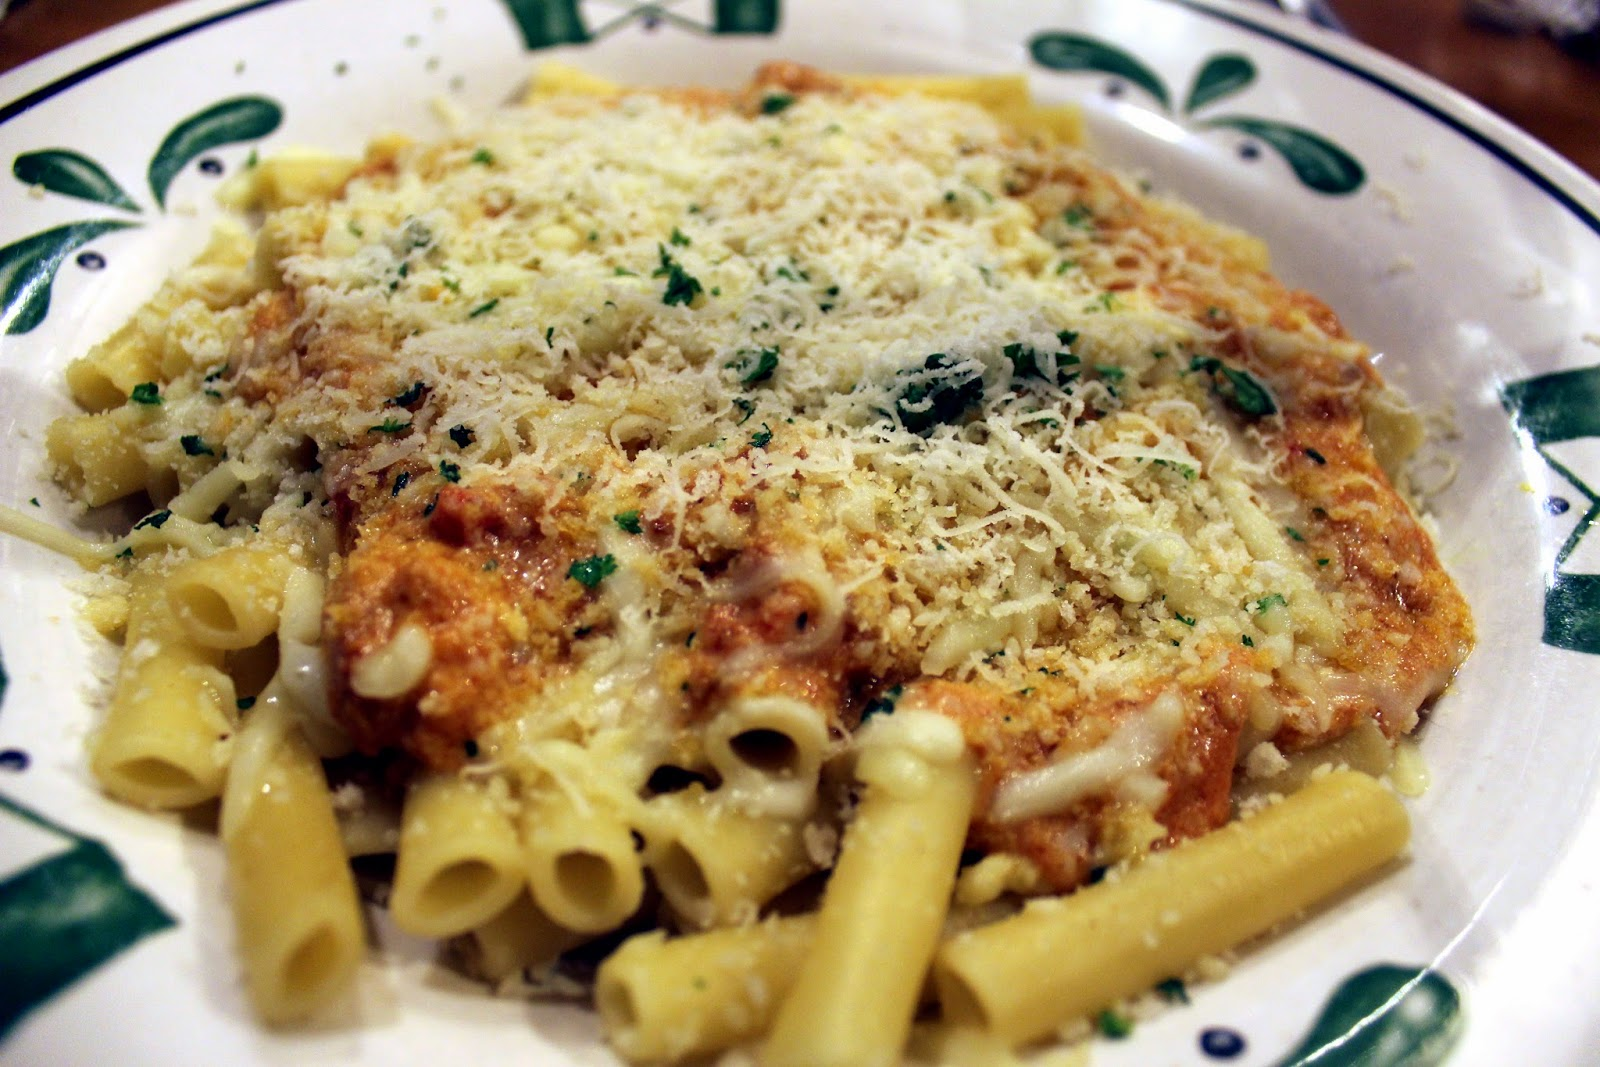 olive garden Five Cheese Ziti al Forno